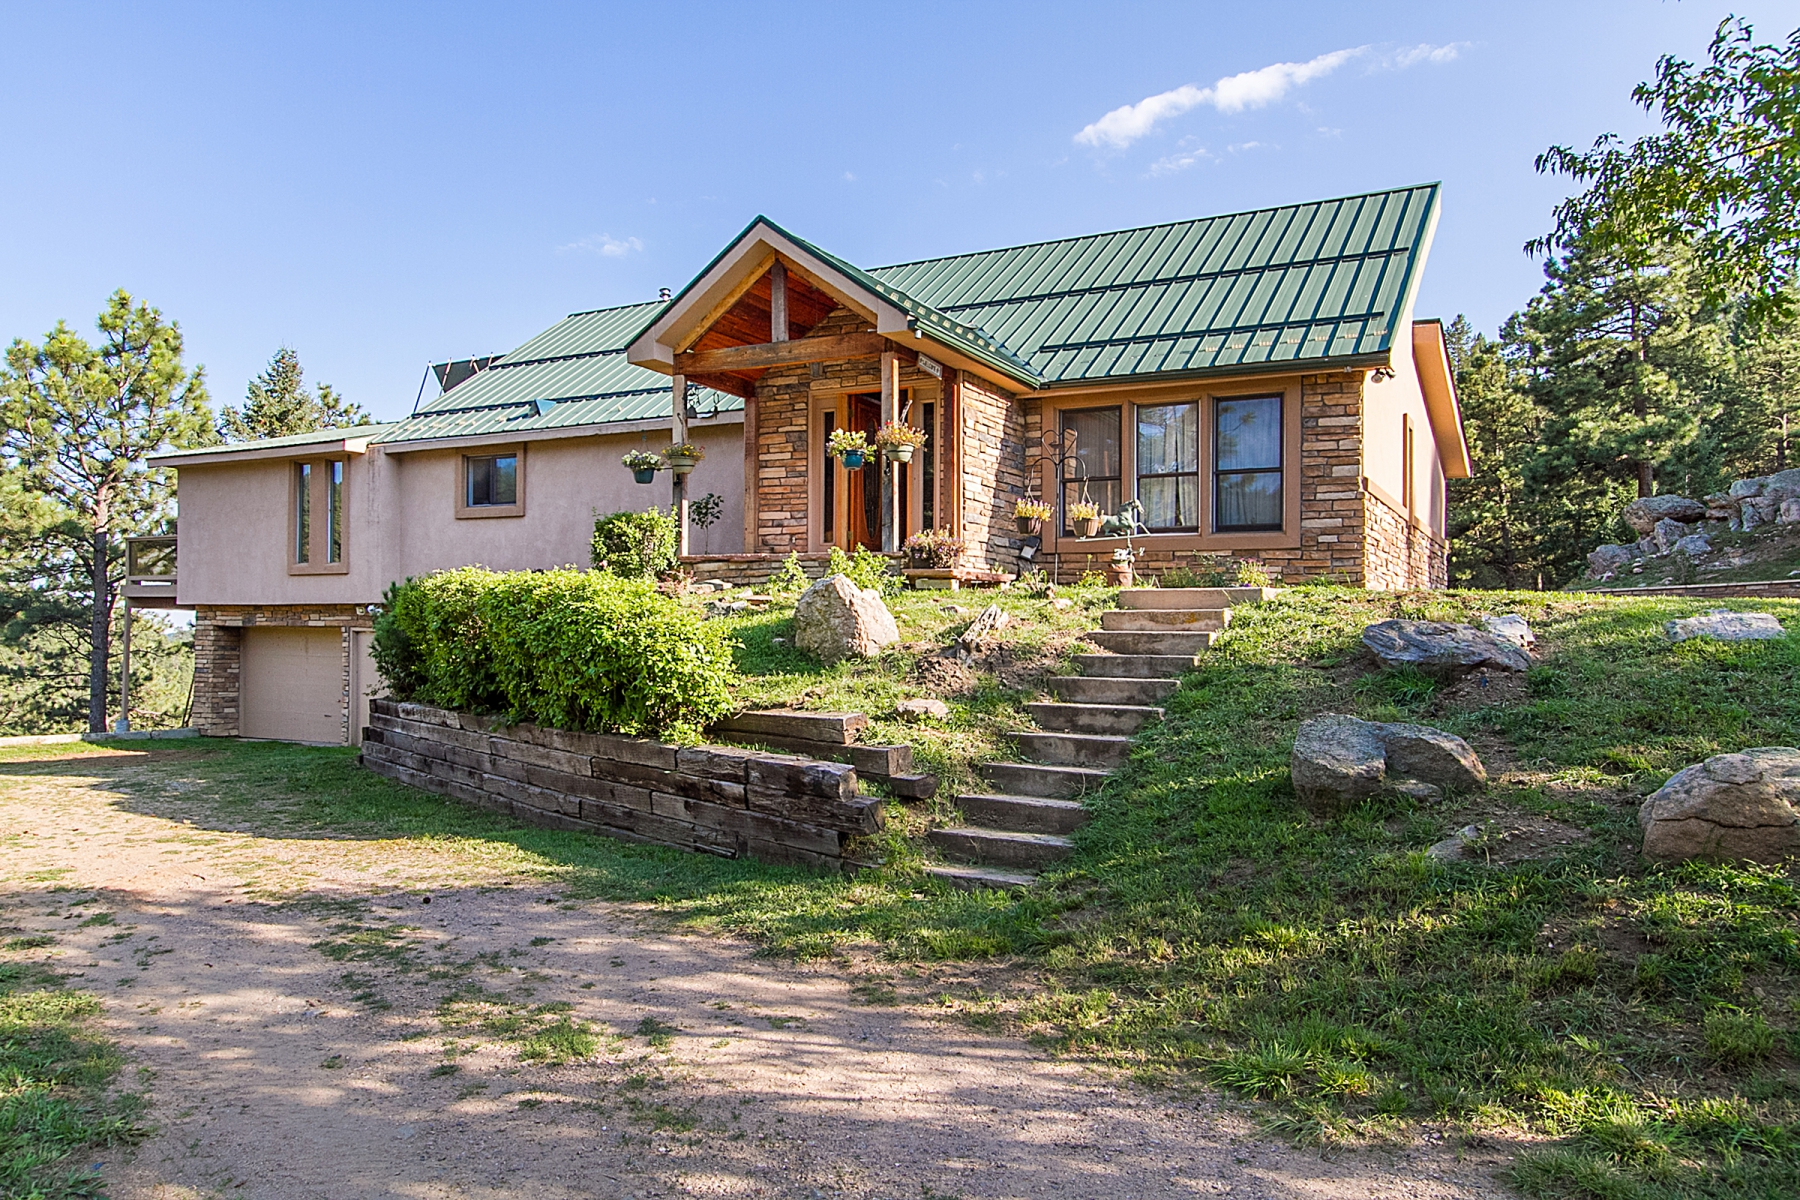 Farm / Ranch / Plantation for Sale at Spectacular Horse Property 8597 S. Deer Creek Canyon Road Littleton, Colorado 80127 United States